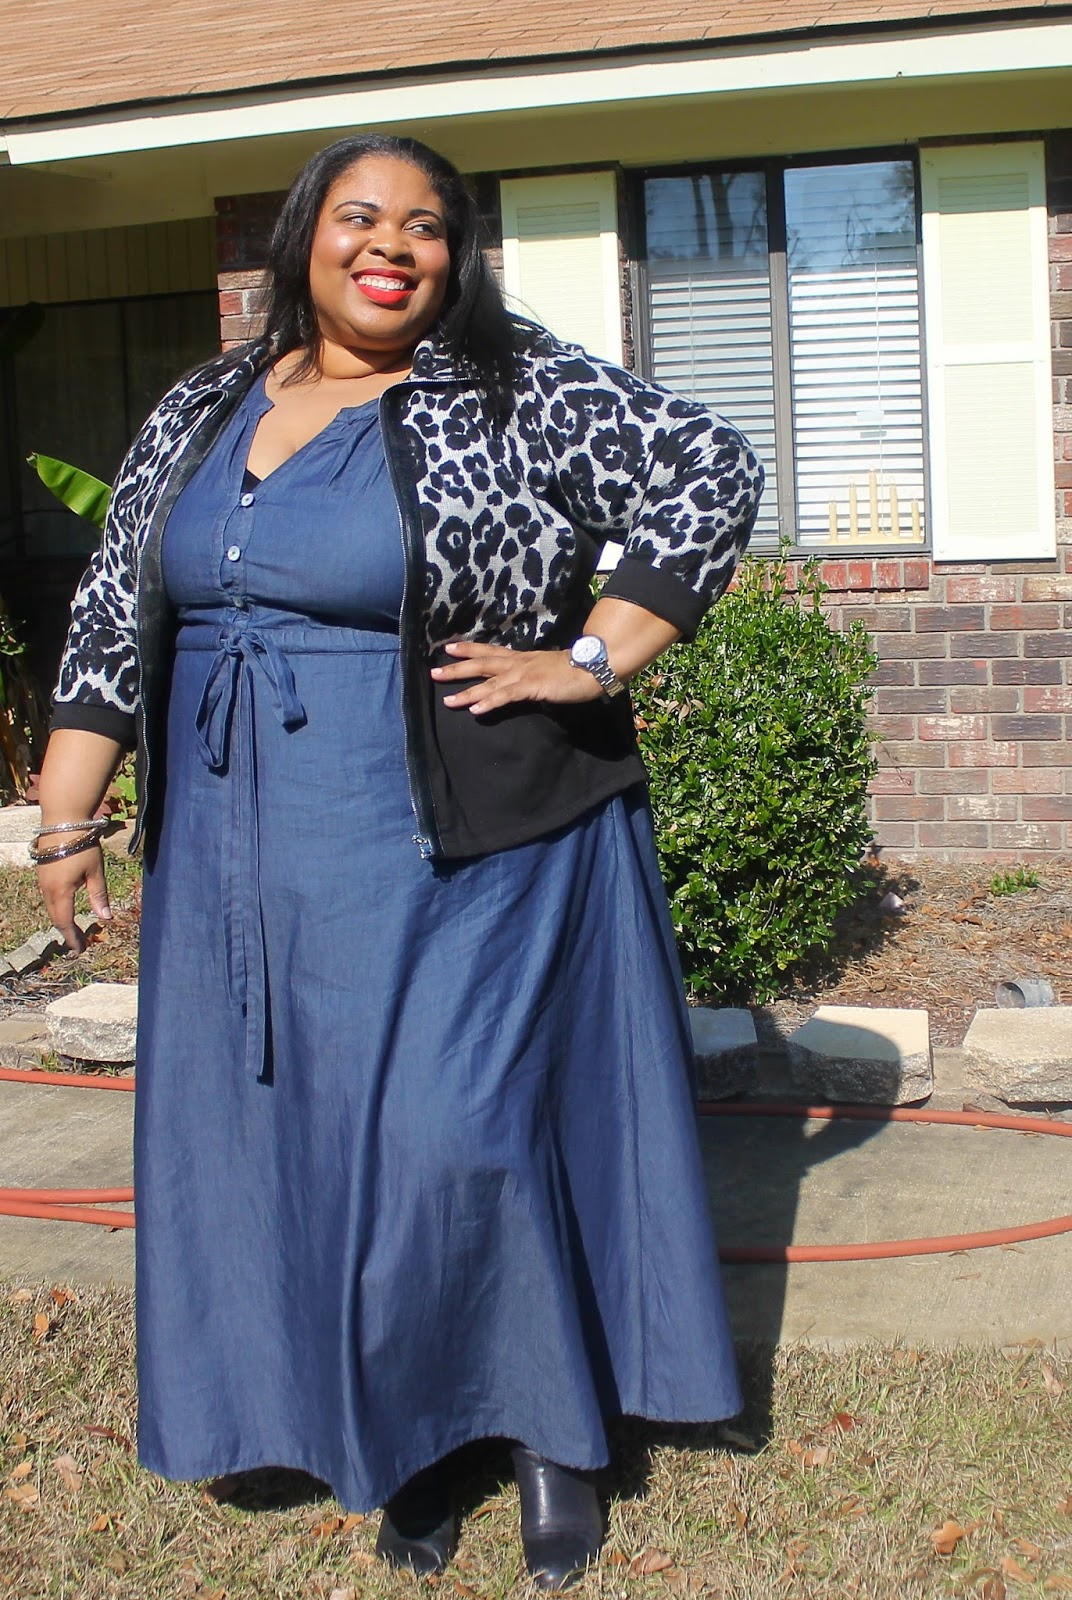 Eshakti, dress customization, customized clothing, plus size clothing, denim dresses, denim plus size dresses